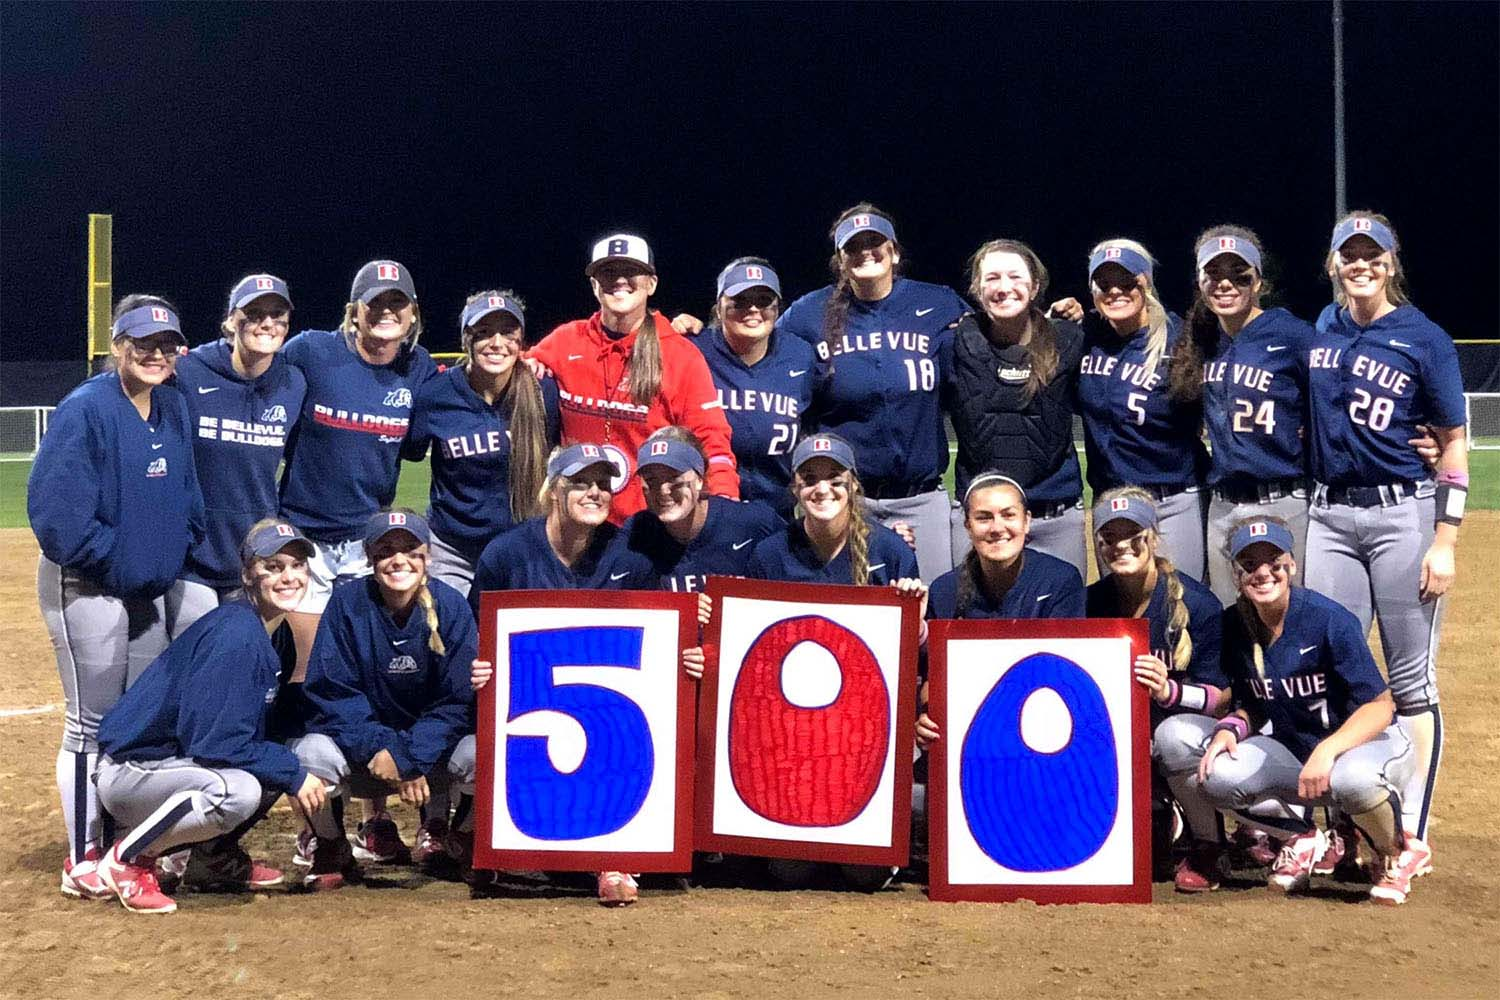 image of Bellevue team posing with Leah Francis with '500' sign